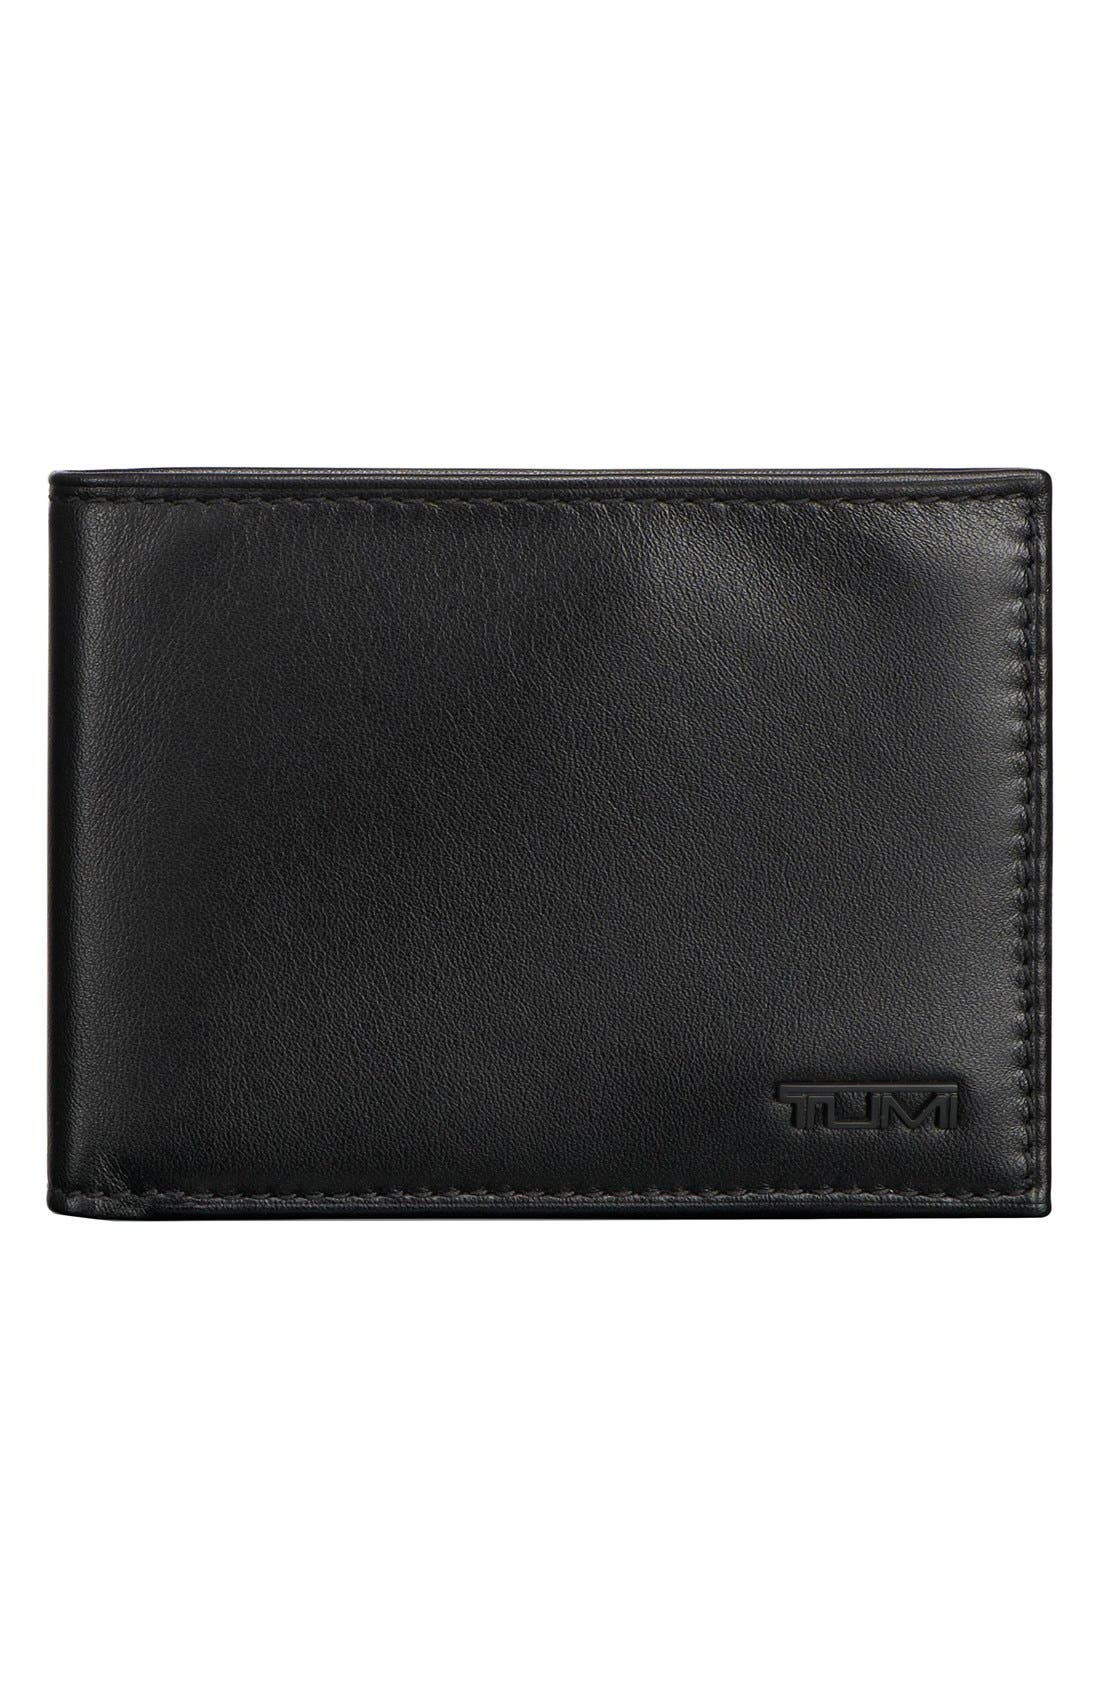 Alternate Image 1 Selected - Tumi Delta Double ID Lock™ Shielded Leather Wallet